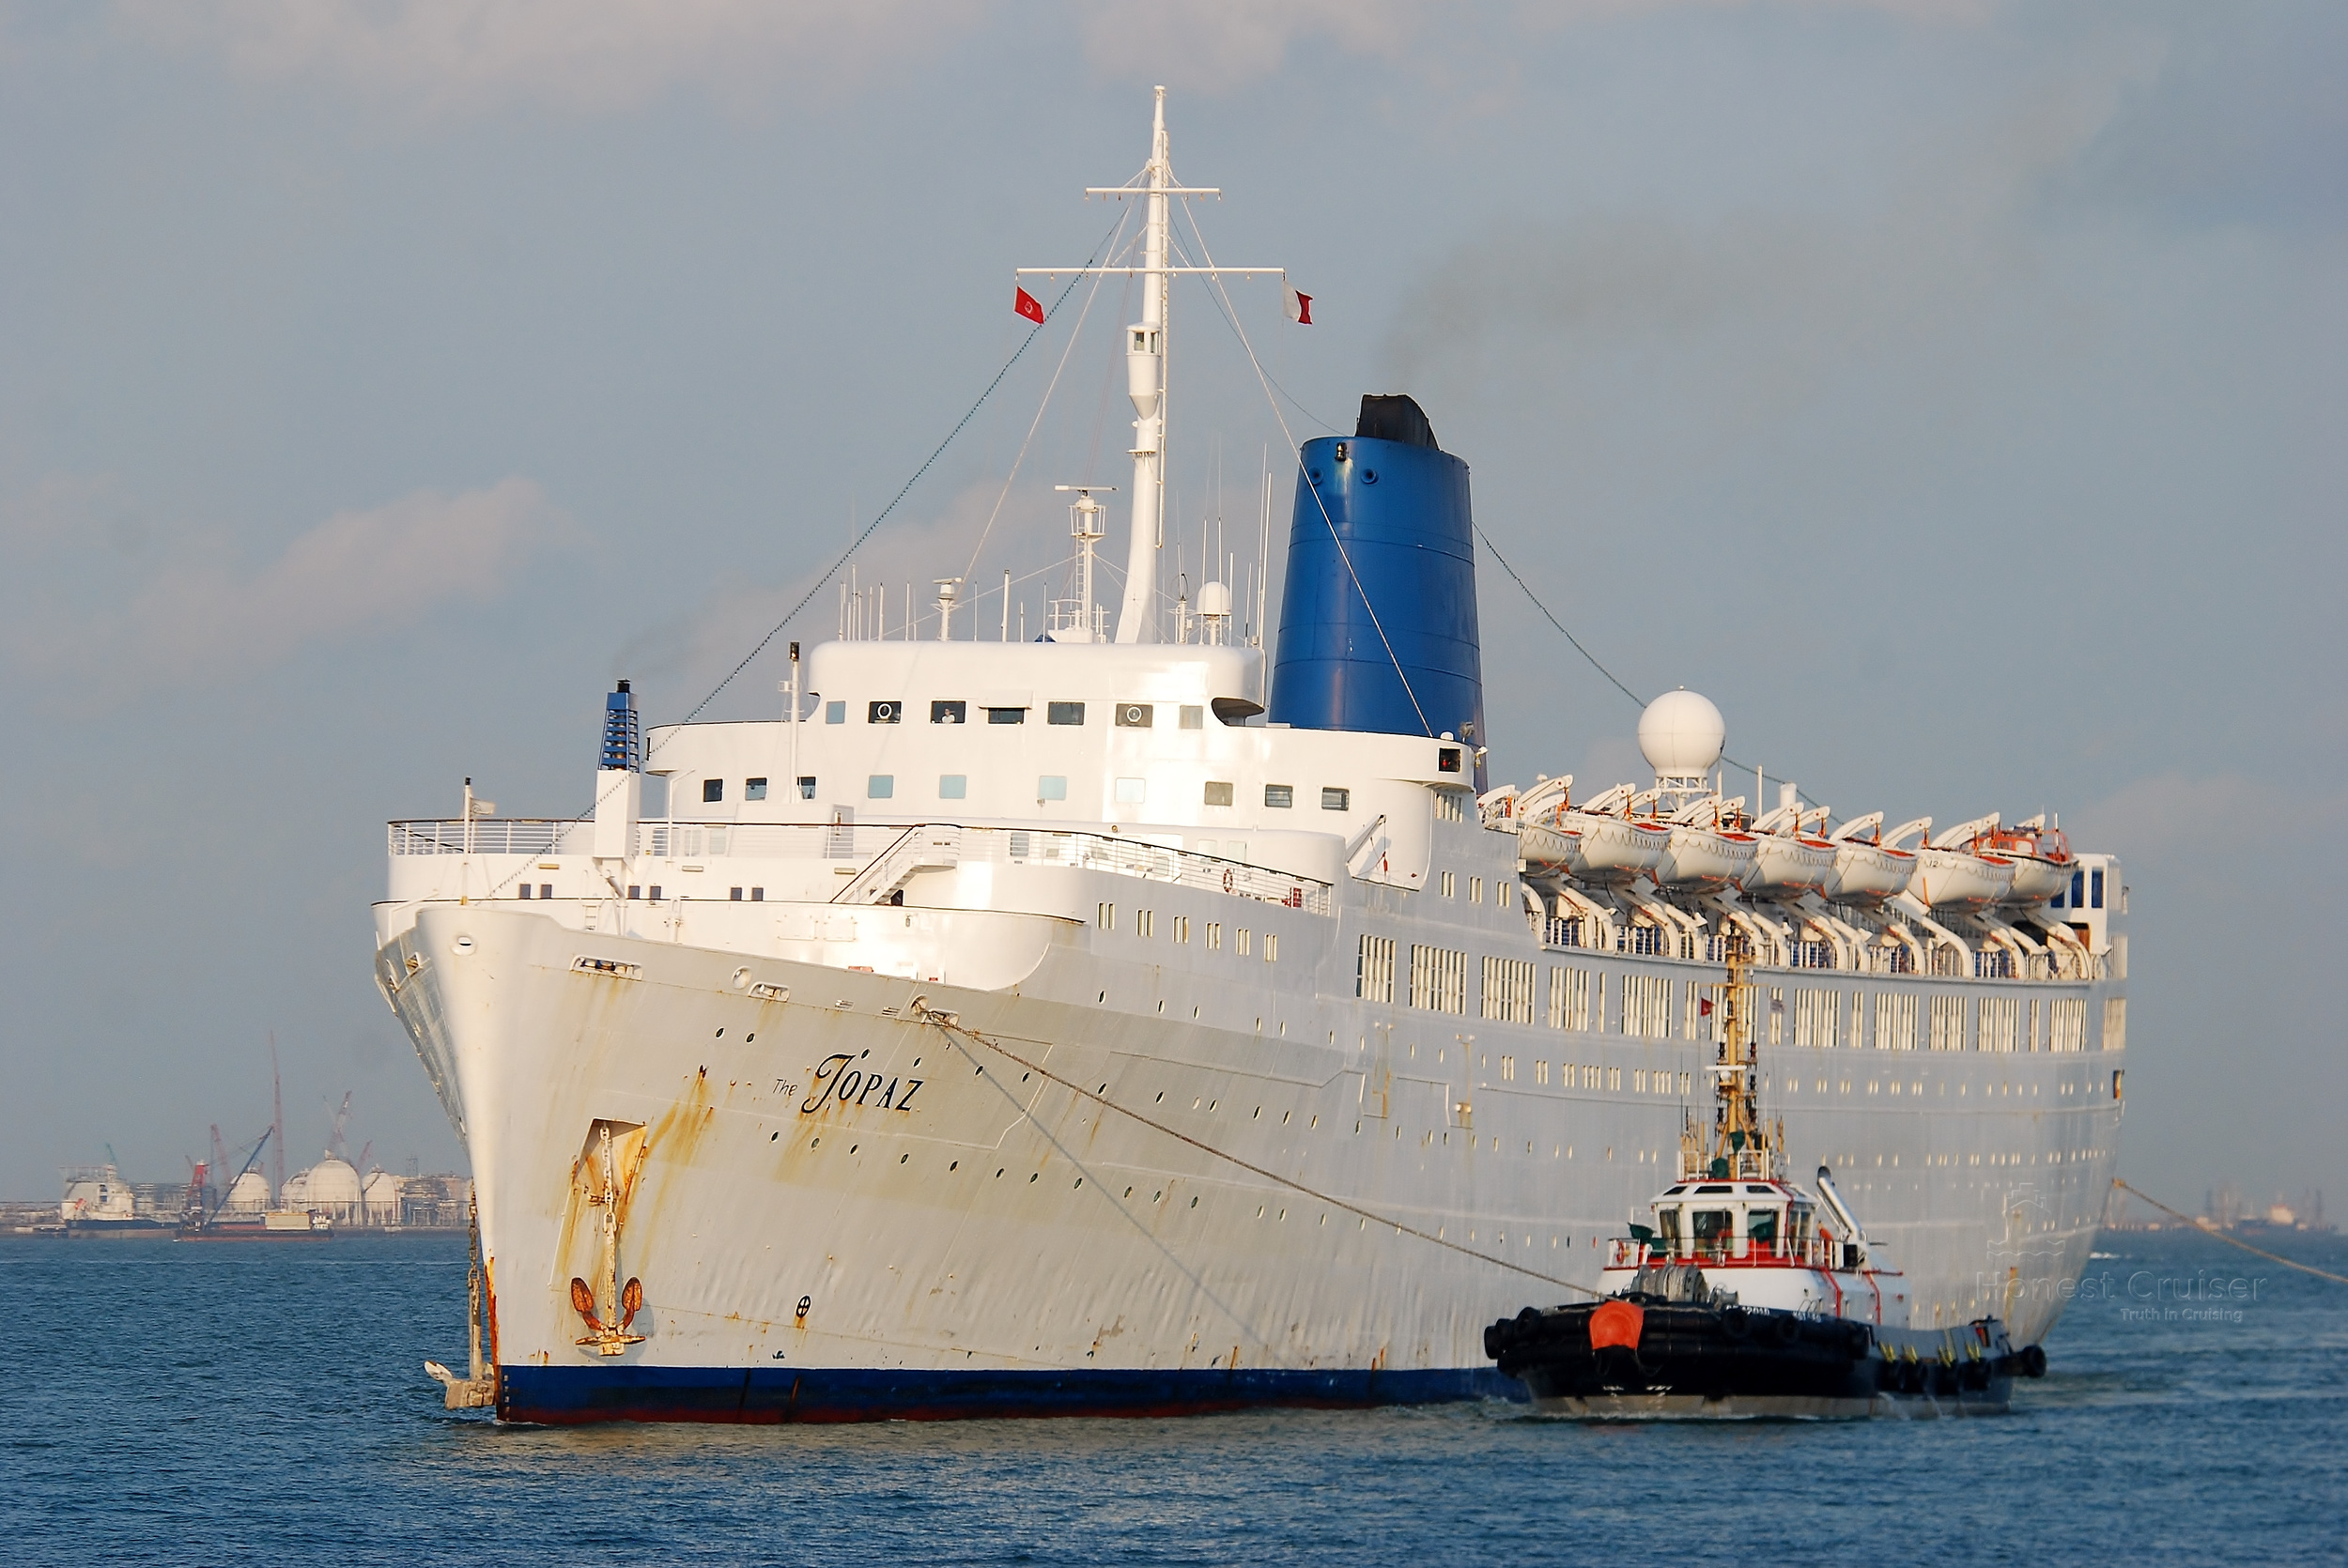 The Topaz (ex-Empress of Britain) - one of the departed.